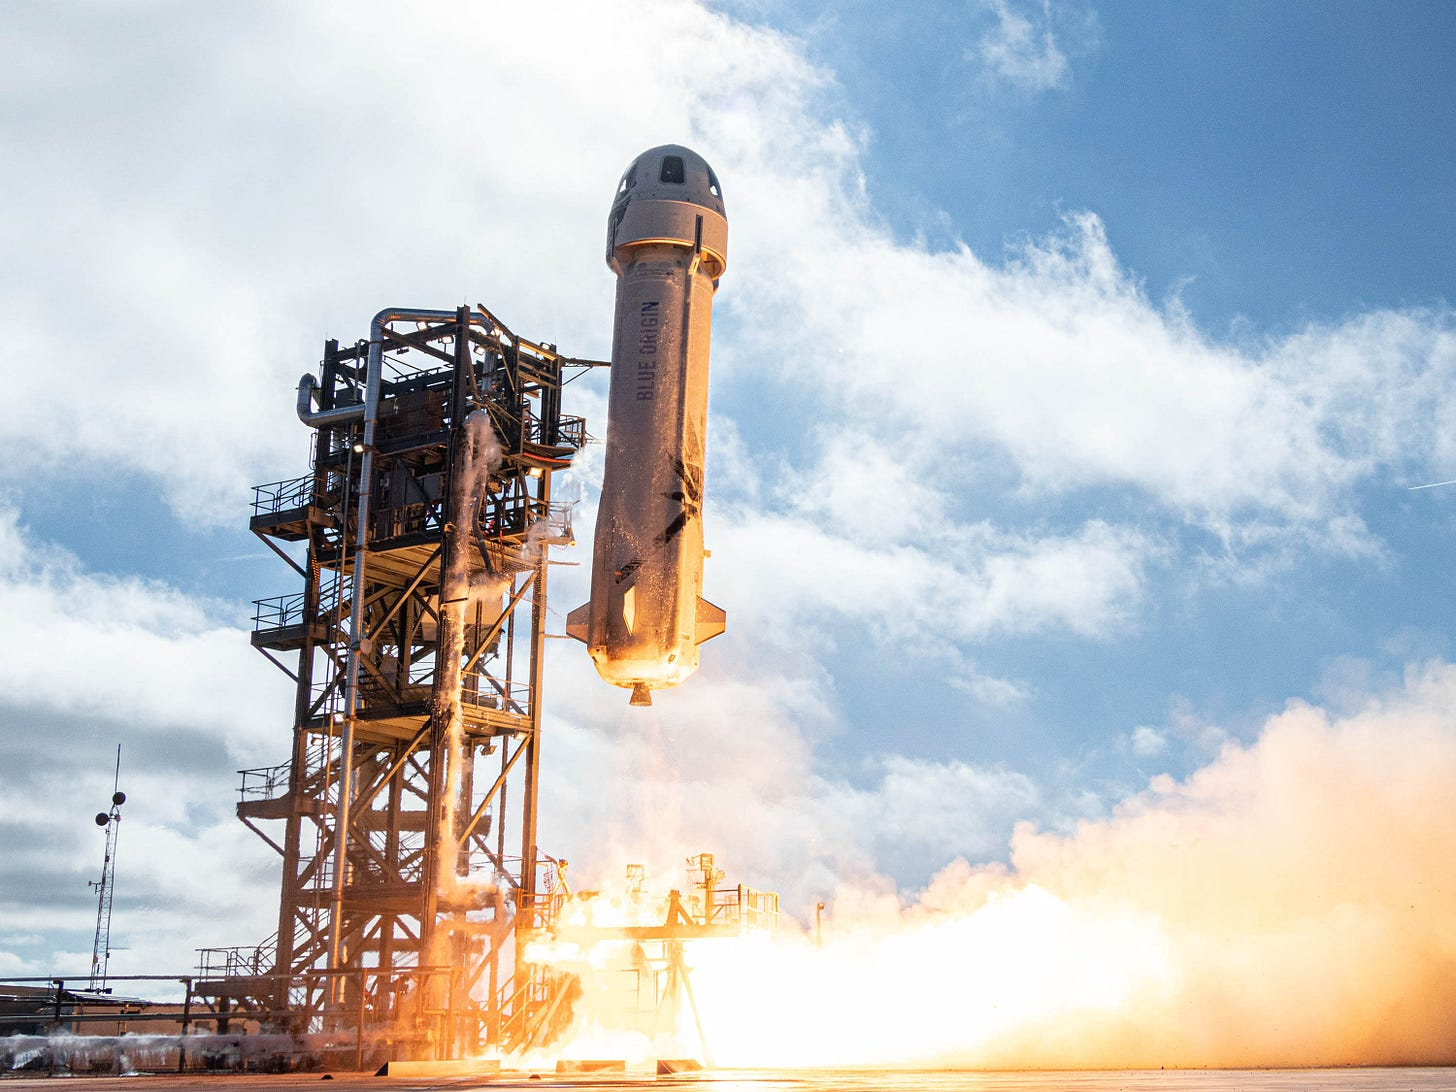 Jeff Bezos and Blue Origin Are Finally Flying to Space - Scientific American